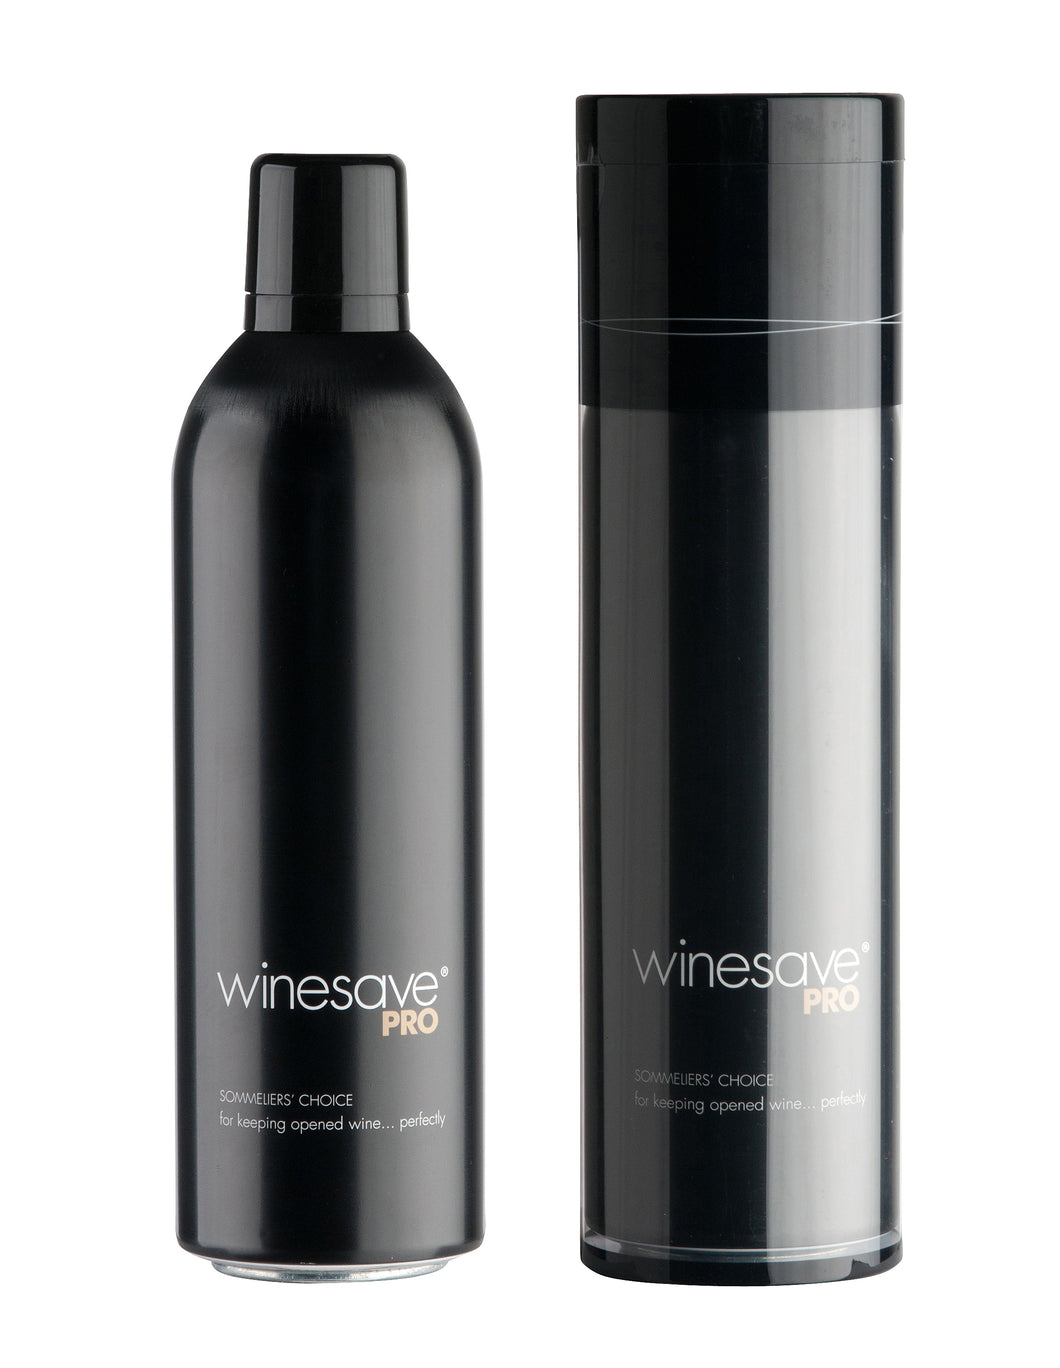 Winesave PRO, premium wine preservation product made with 100% argon gas. Open bottle and packaged bottle.